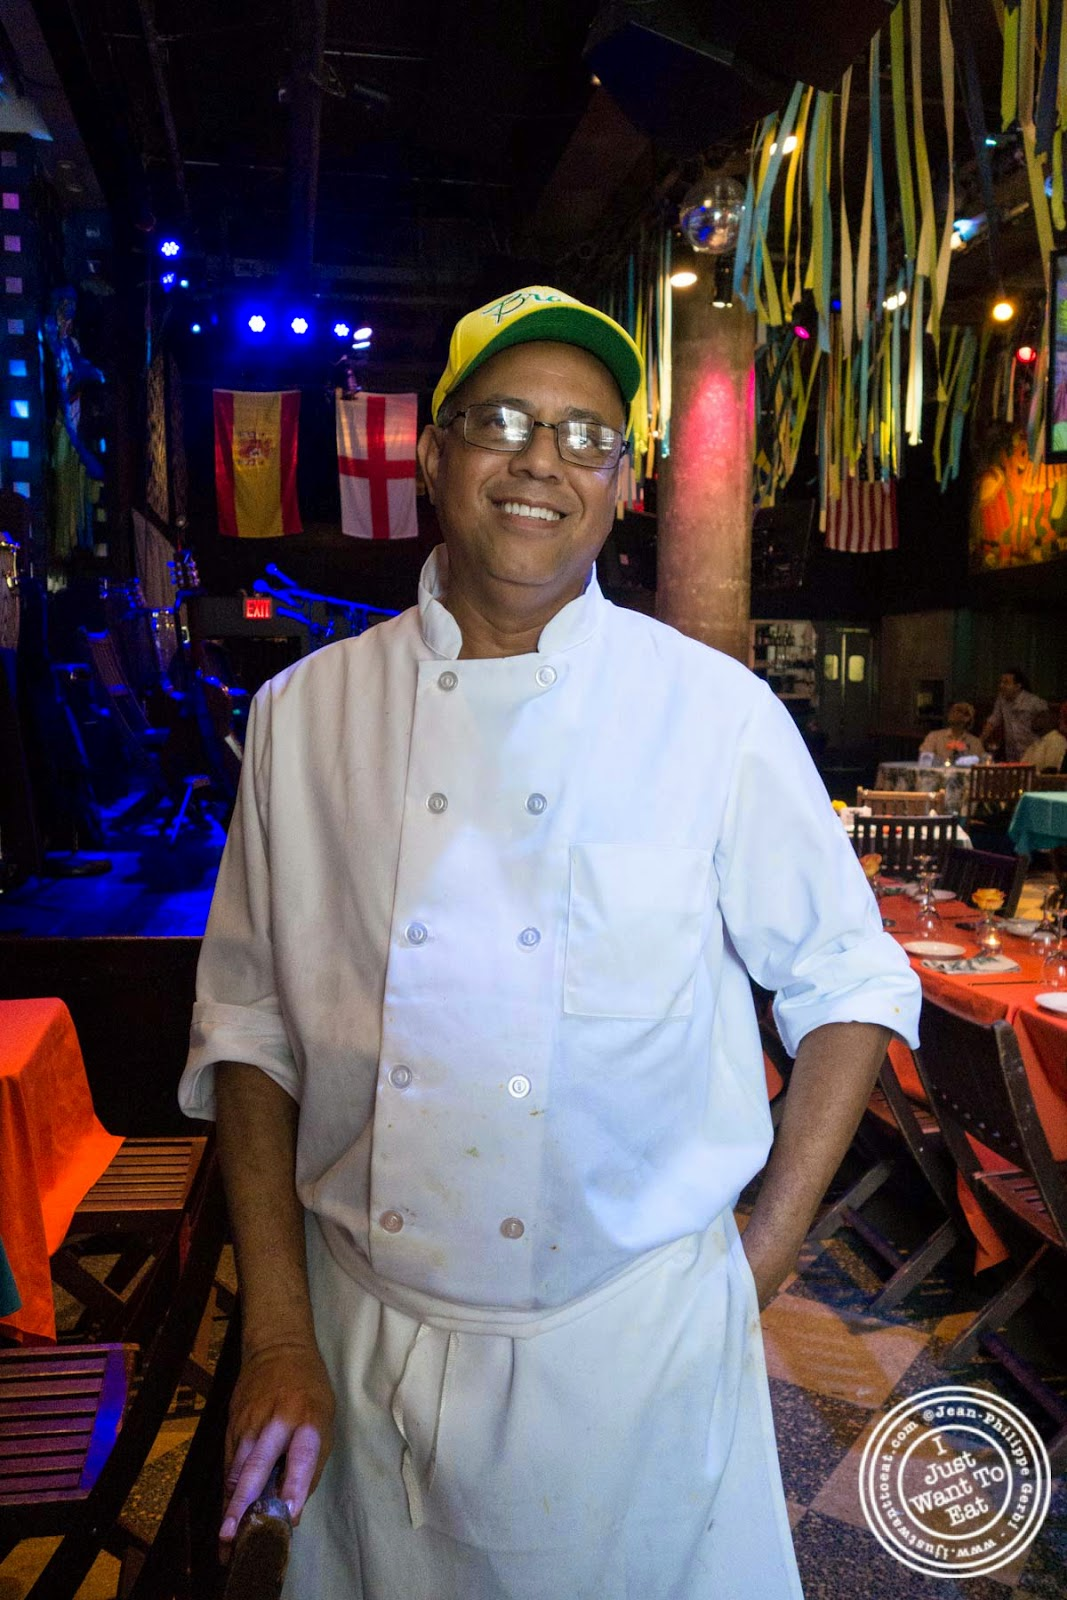 image of Chef Jorge Lima at Sounds Of Brazil SOB's in NY, New York